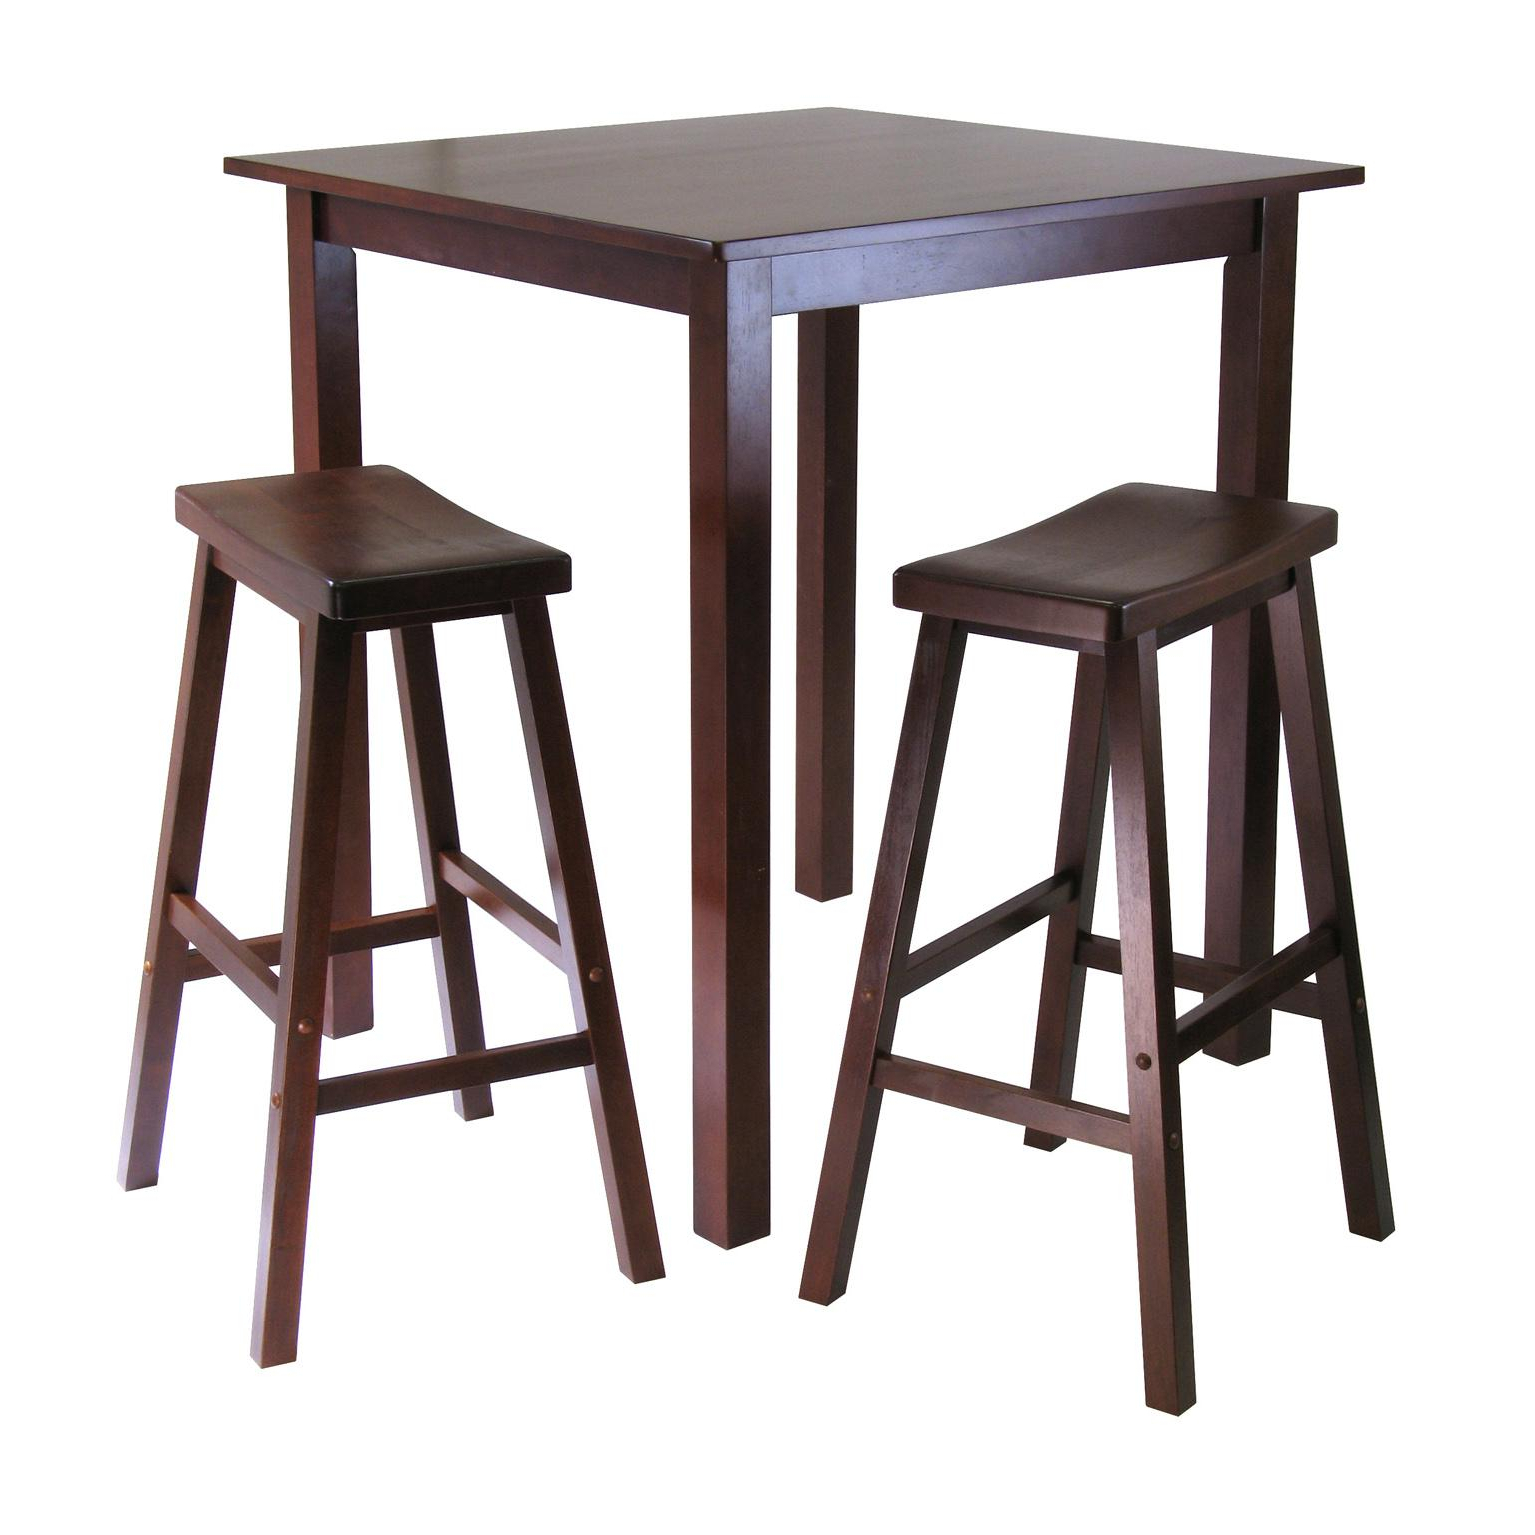 Winsome 3 Piece Counter Height Dining Sets With 2017 Winsome's Parkland 3 Piece Square High/pub Table Set In Antique Walnut Finish (View 10 of 20)